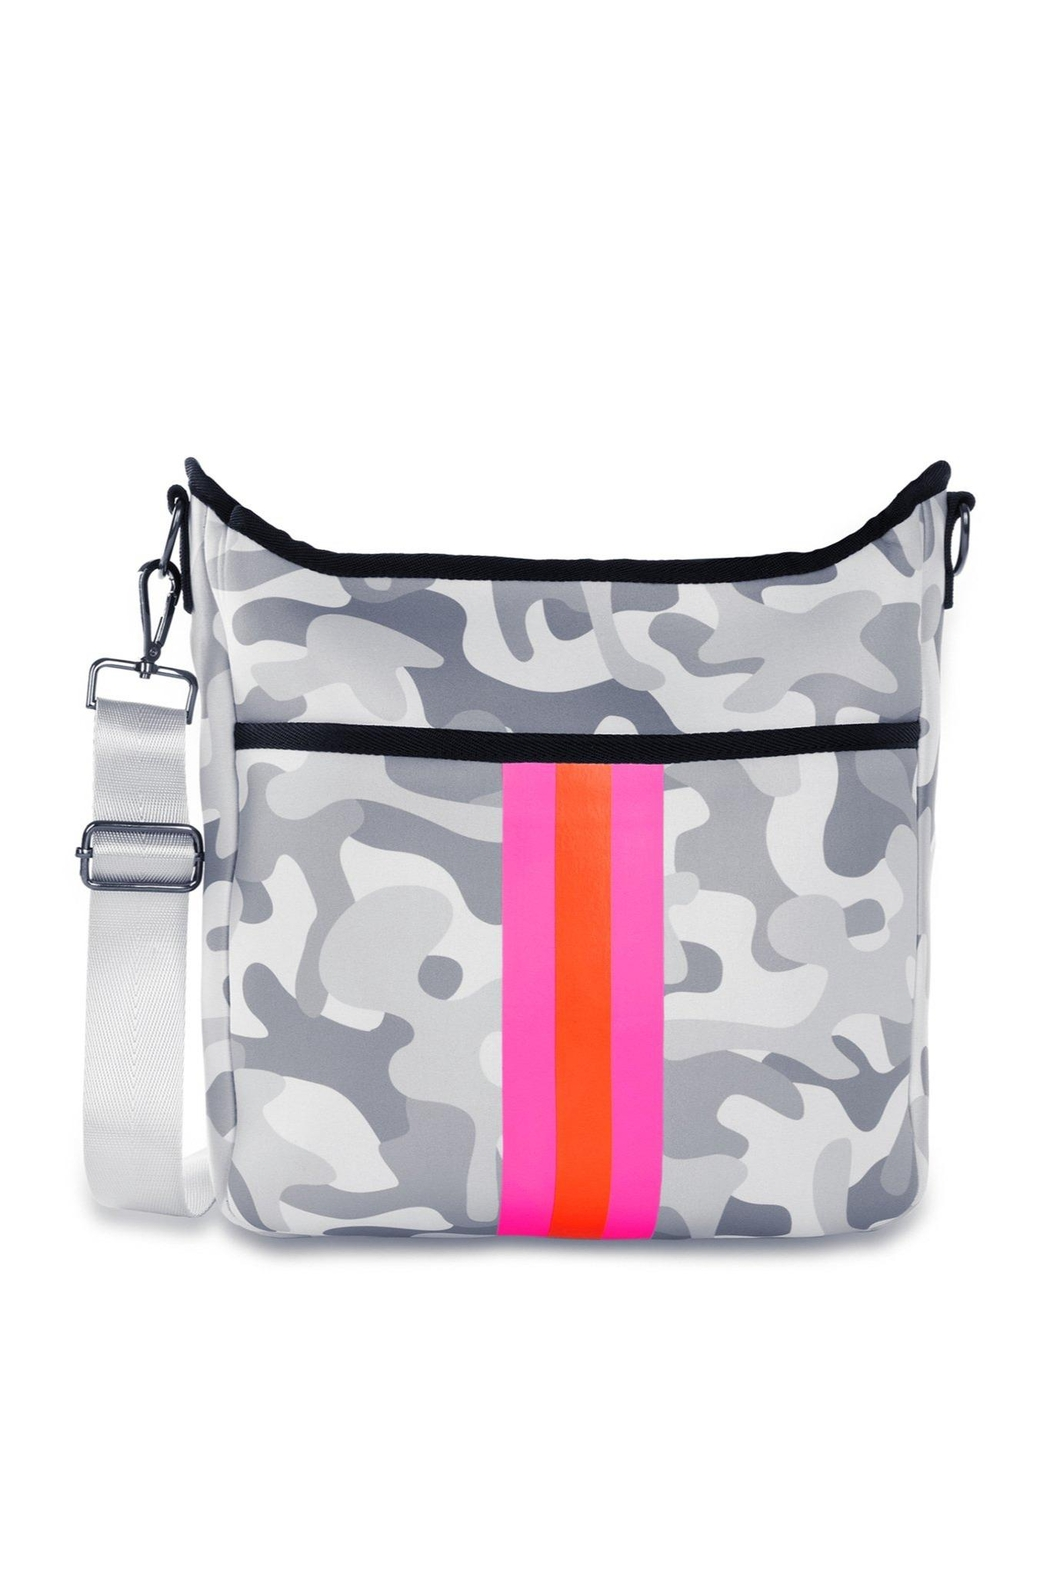 Haute Shore Bags Blake Crossbody - Main Image